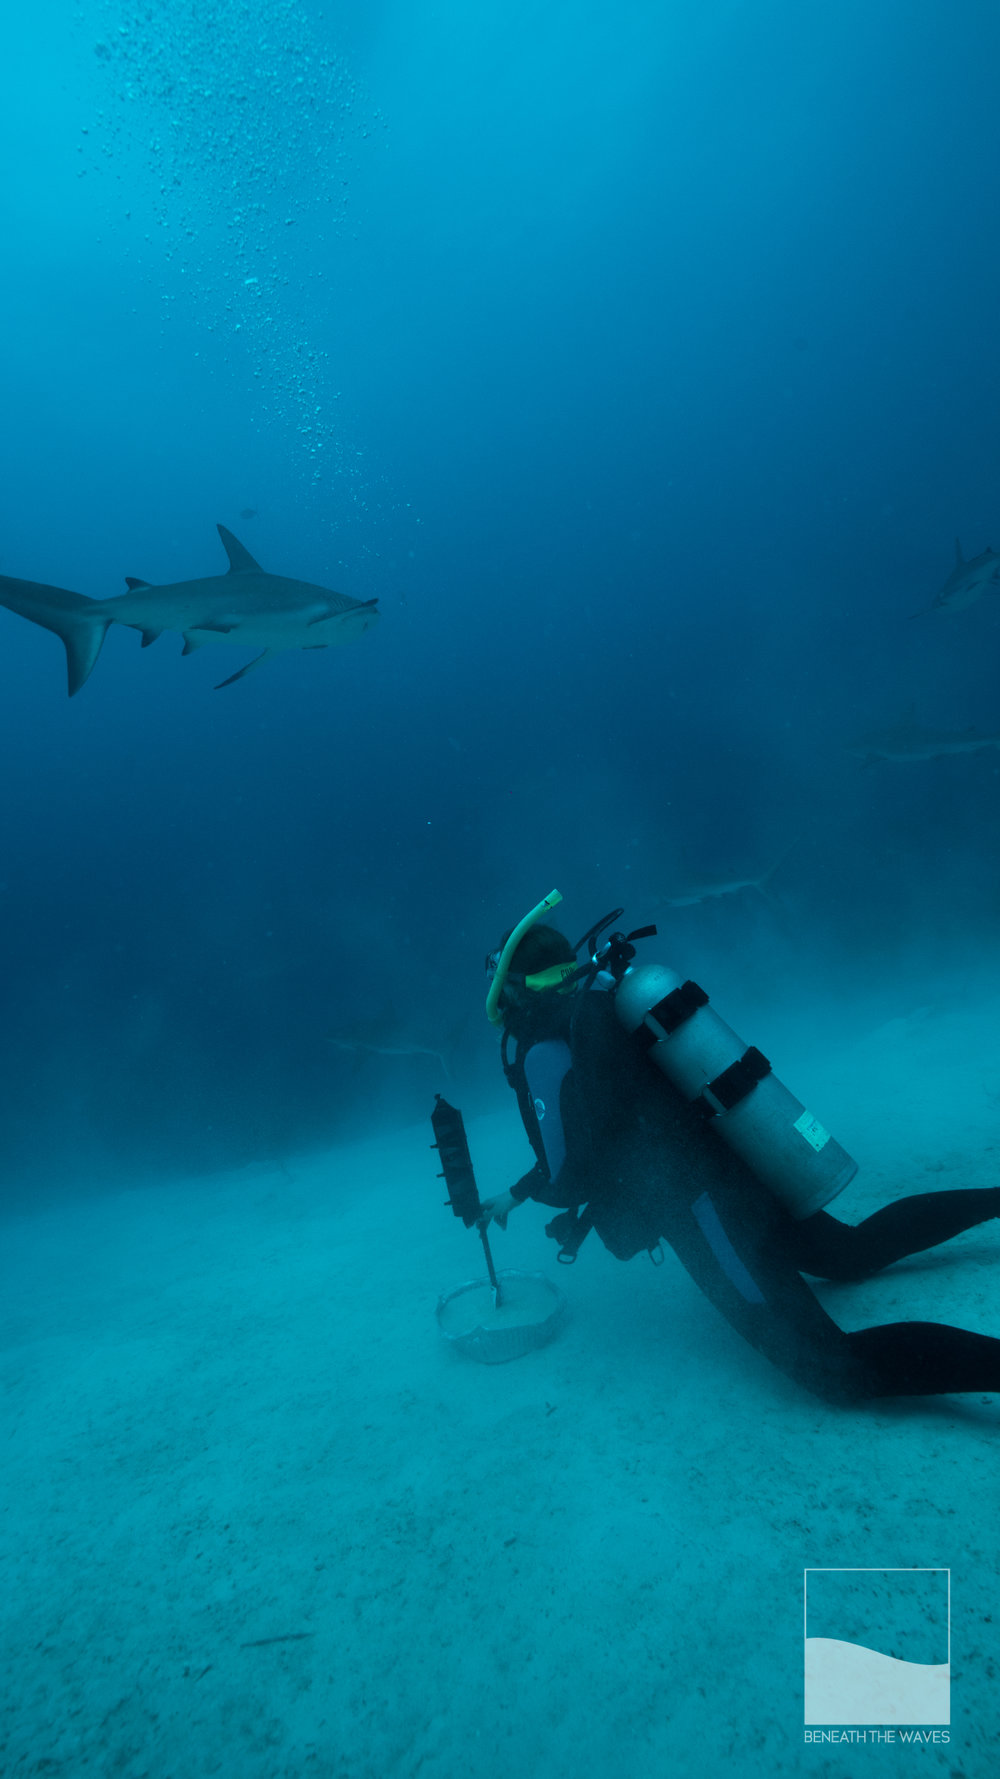 Erica doing science! Deploying receivers to pickup transmissions from any sharks equipped with trackers that come within 500 meters.